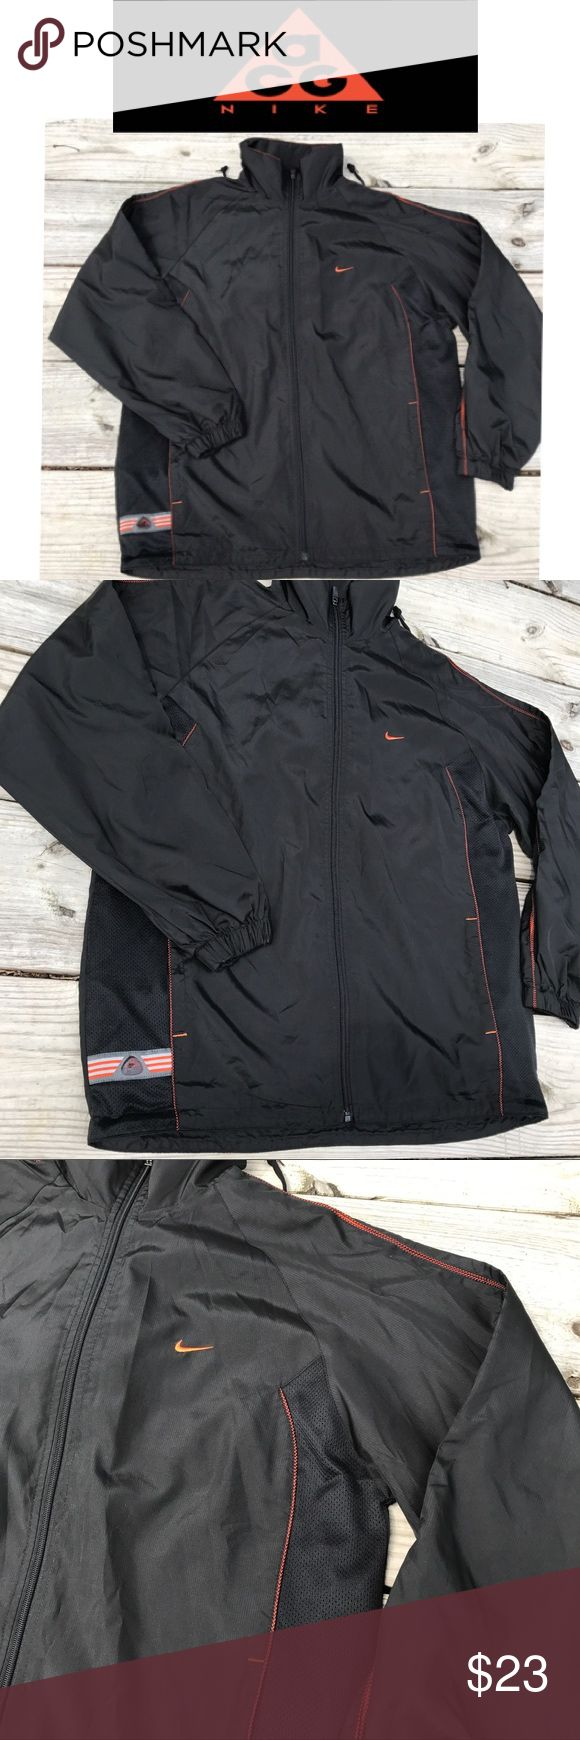 """👨Men Windbreaker 2XL clima-fit Nike ACG 🔳🔶 Excellent Condition. Black and orange intricate piping detail all over. Full zipper. 2 front pockets. Tuck in the collar hood. 2XL sleeve 30"""" pit to pit 24"""" pit to hem 16"""" Nike ACG Jackets & Coats Performance Jackets"""